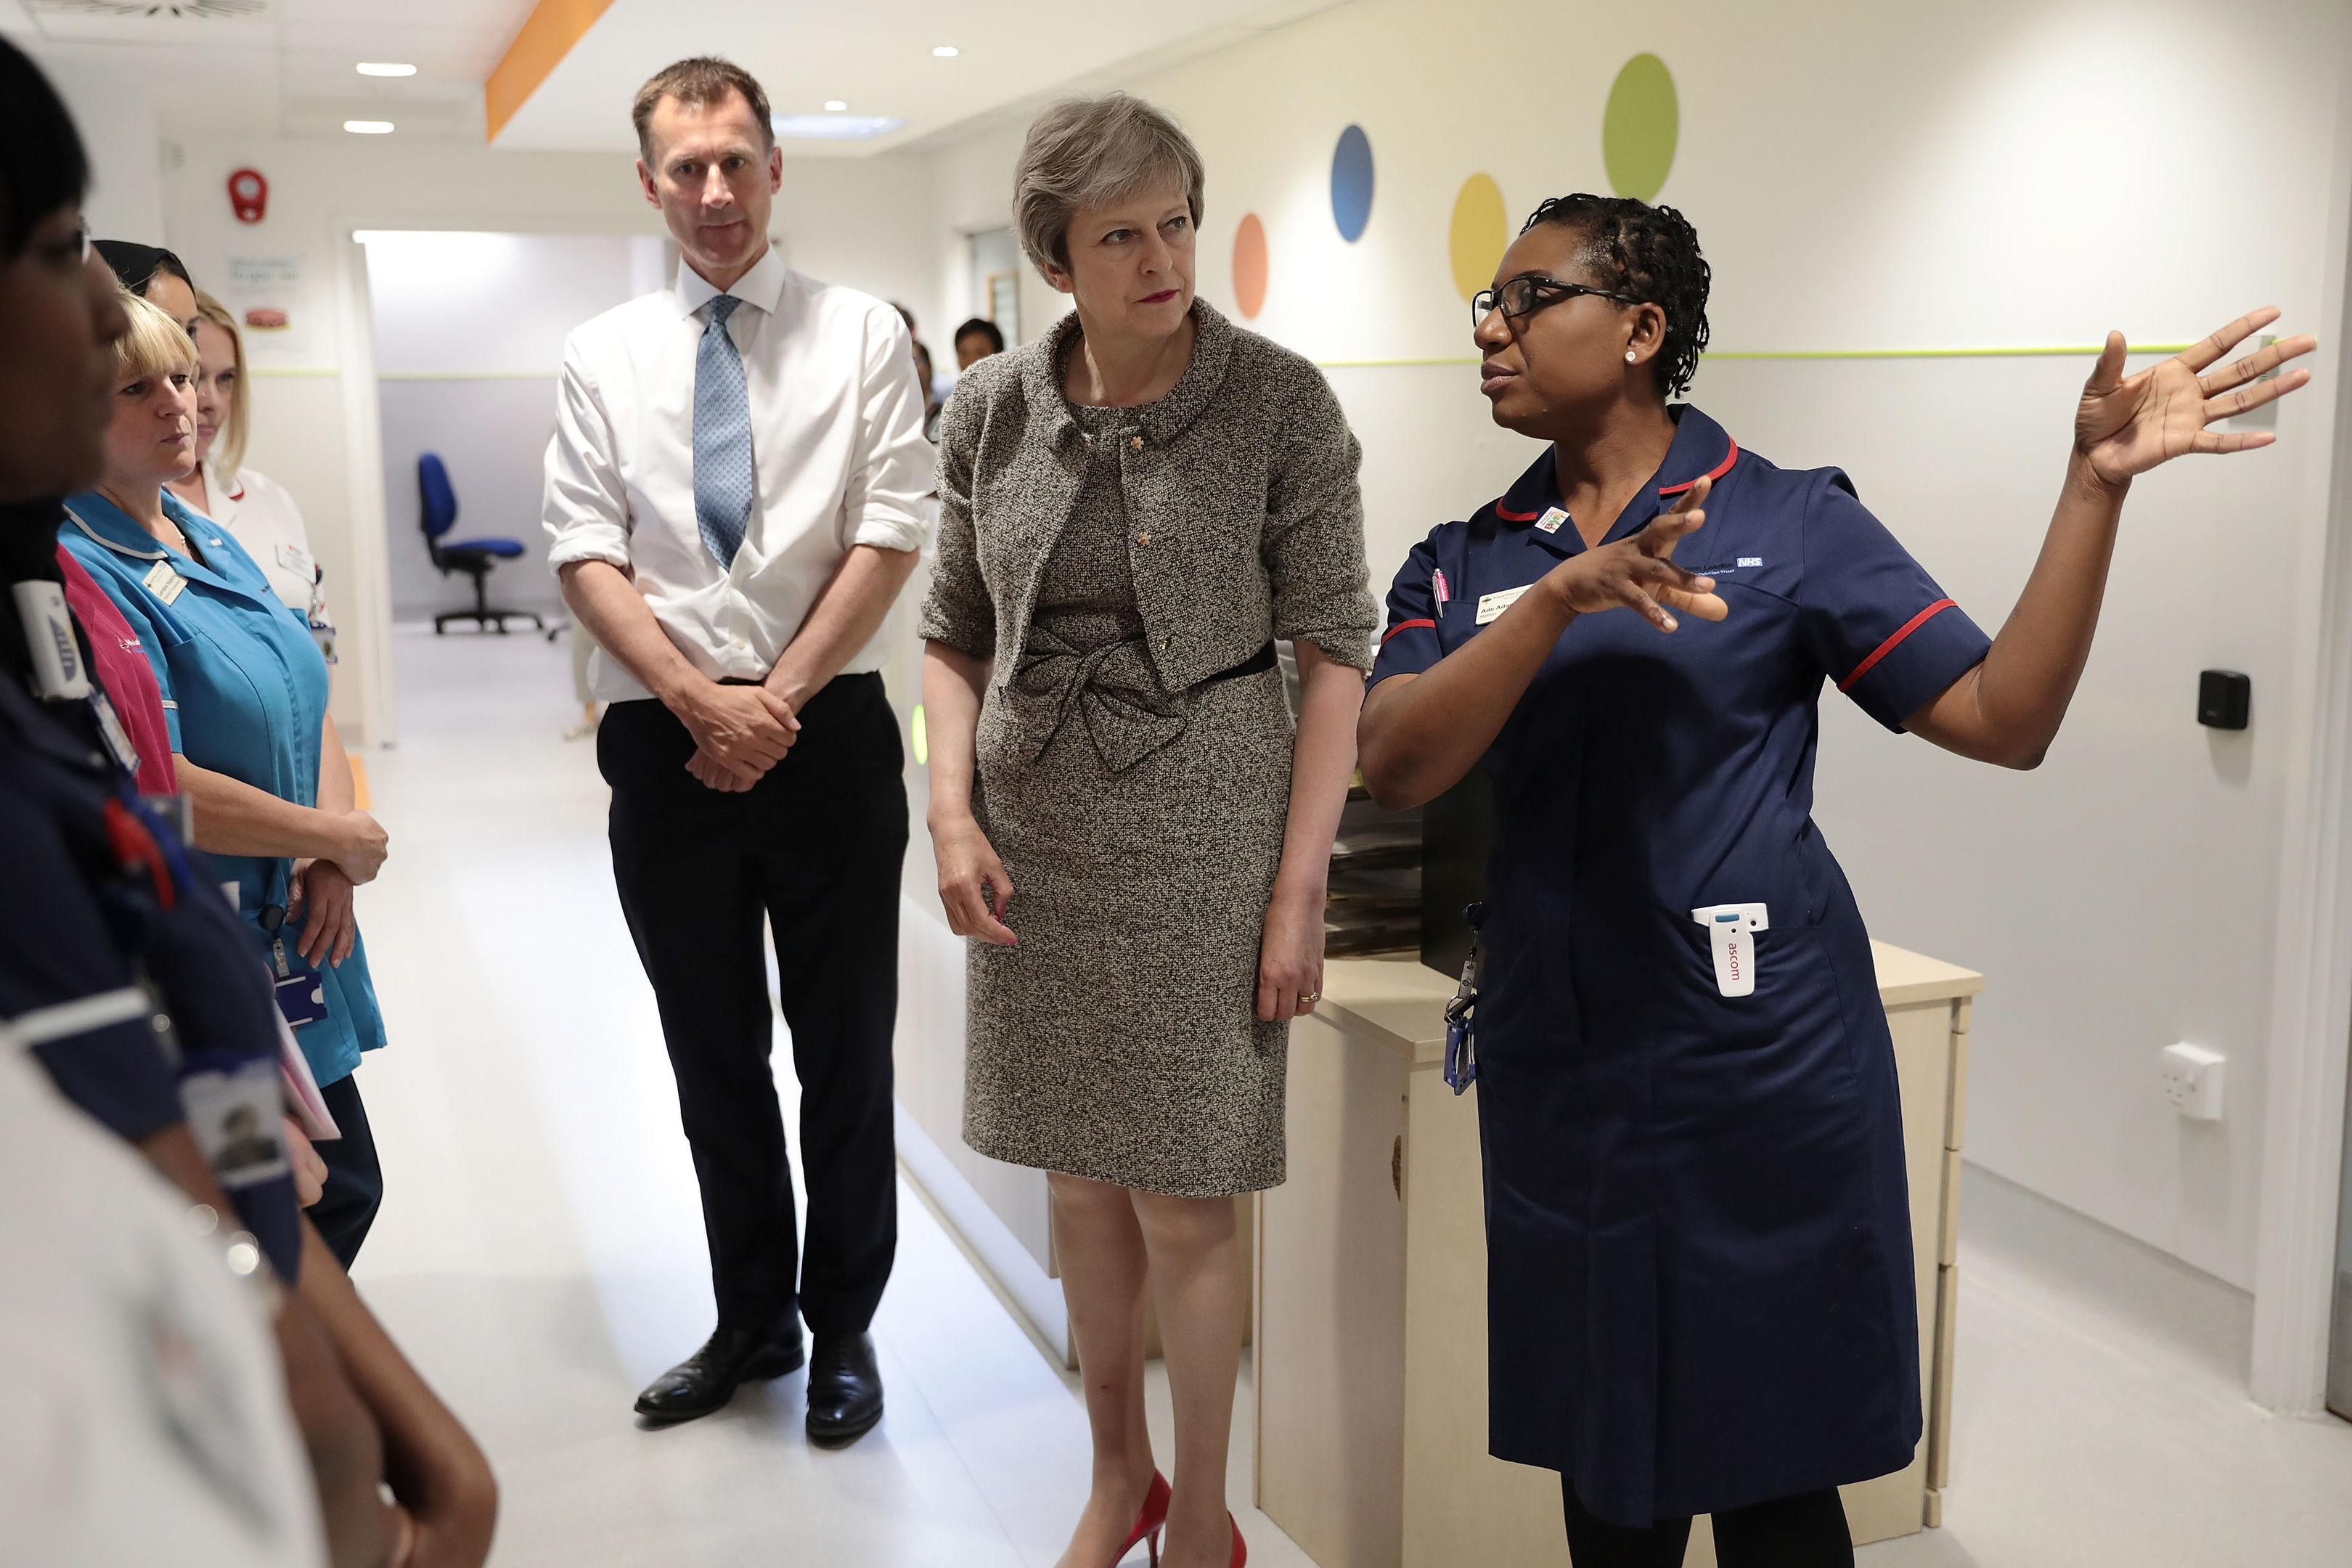 Prime Minister Theresa May and Secretary of State for Health and Social Care Jeremy Hunt meet nurses during a tour of the Royal Free Hospital, north London following the announcement of  increased NHS funding. PRESS ASSOCIATION Photo. Picture date: Monday June 18, 2018. Later in a speech she outlined how spending on the health service will grow by £384 million a week in real terms by 2024. See PA story POLITICS NHS. Photo credit should read: Dan Kitwood/PA Wire